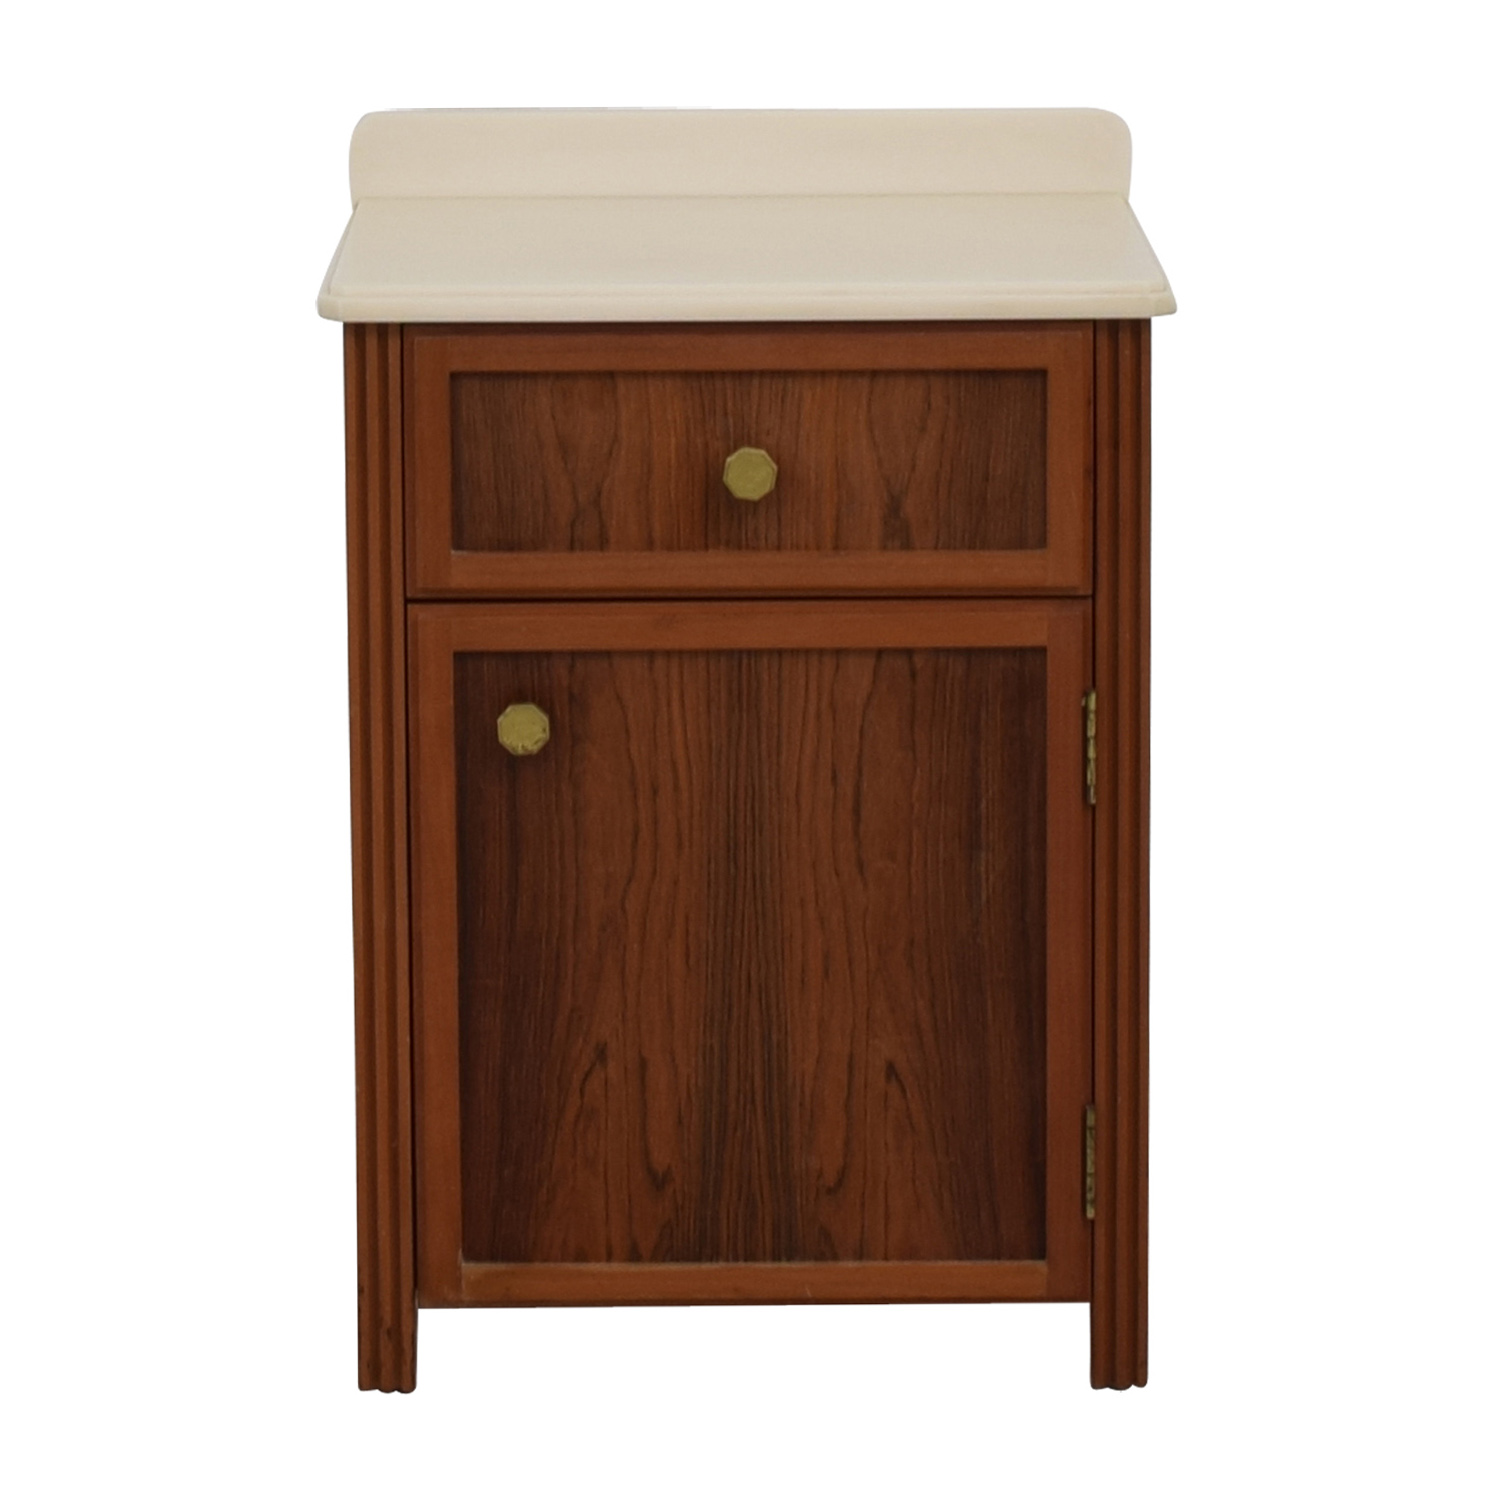 Single Drawer with Storage Cabinet used